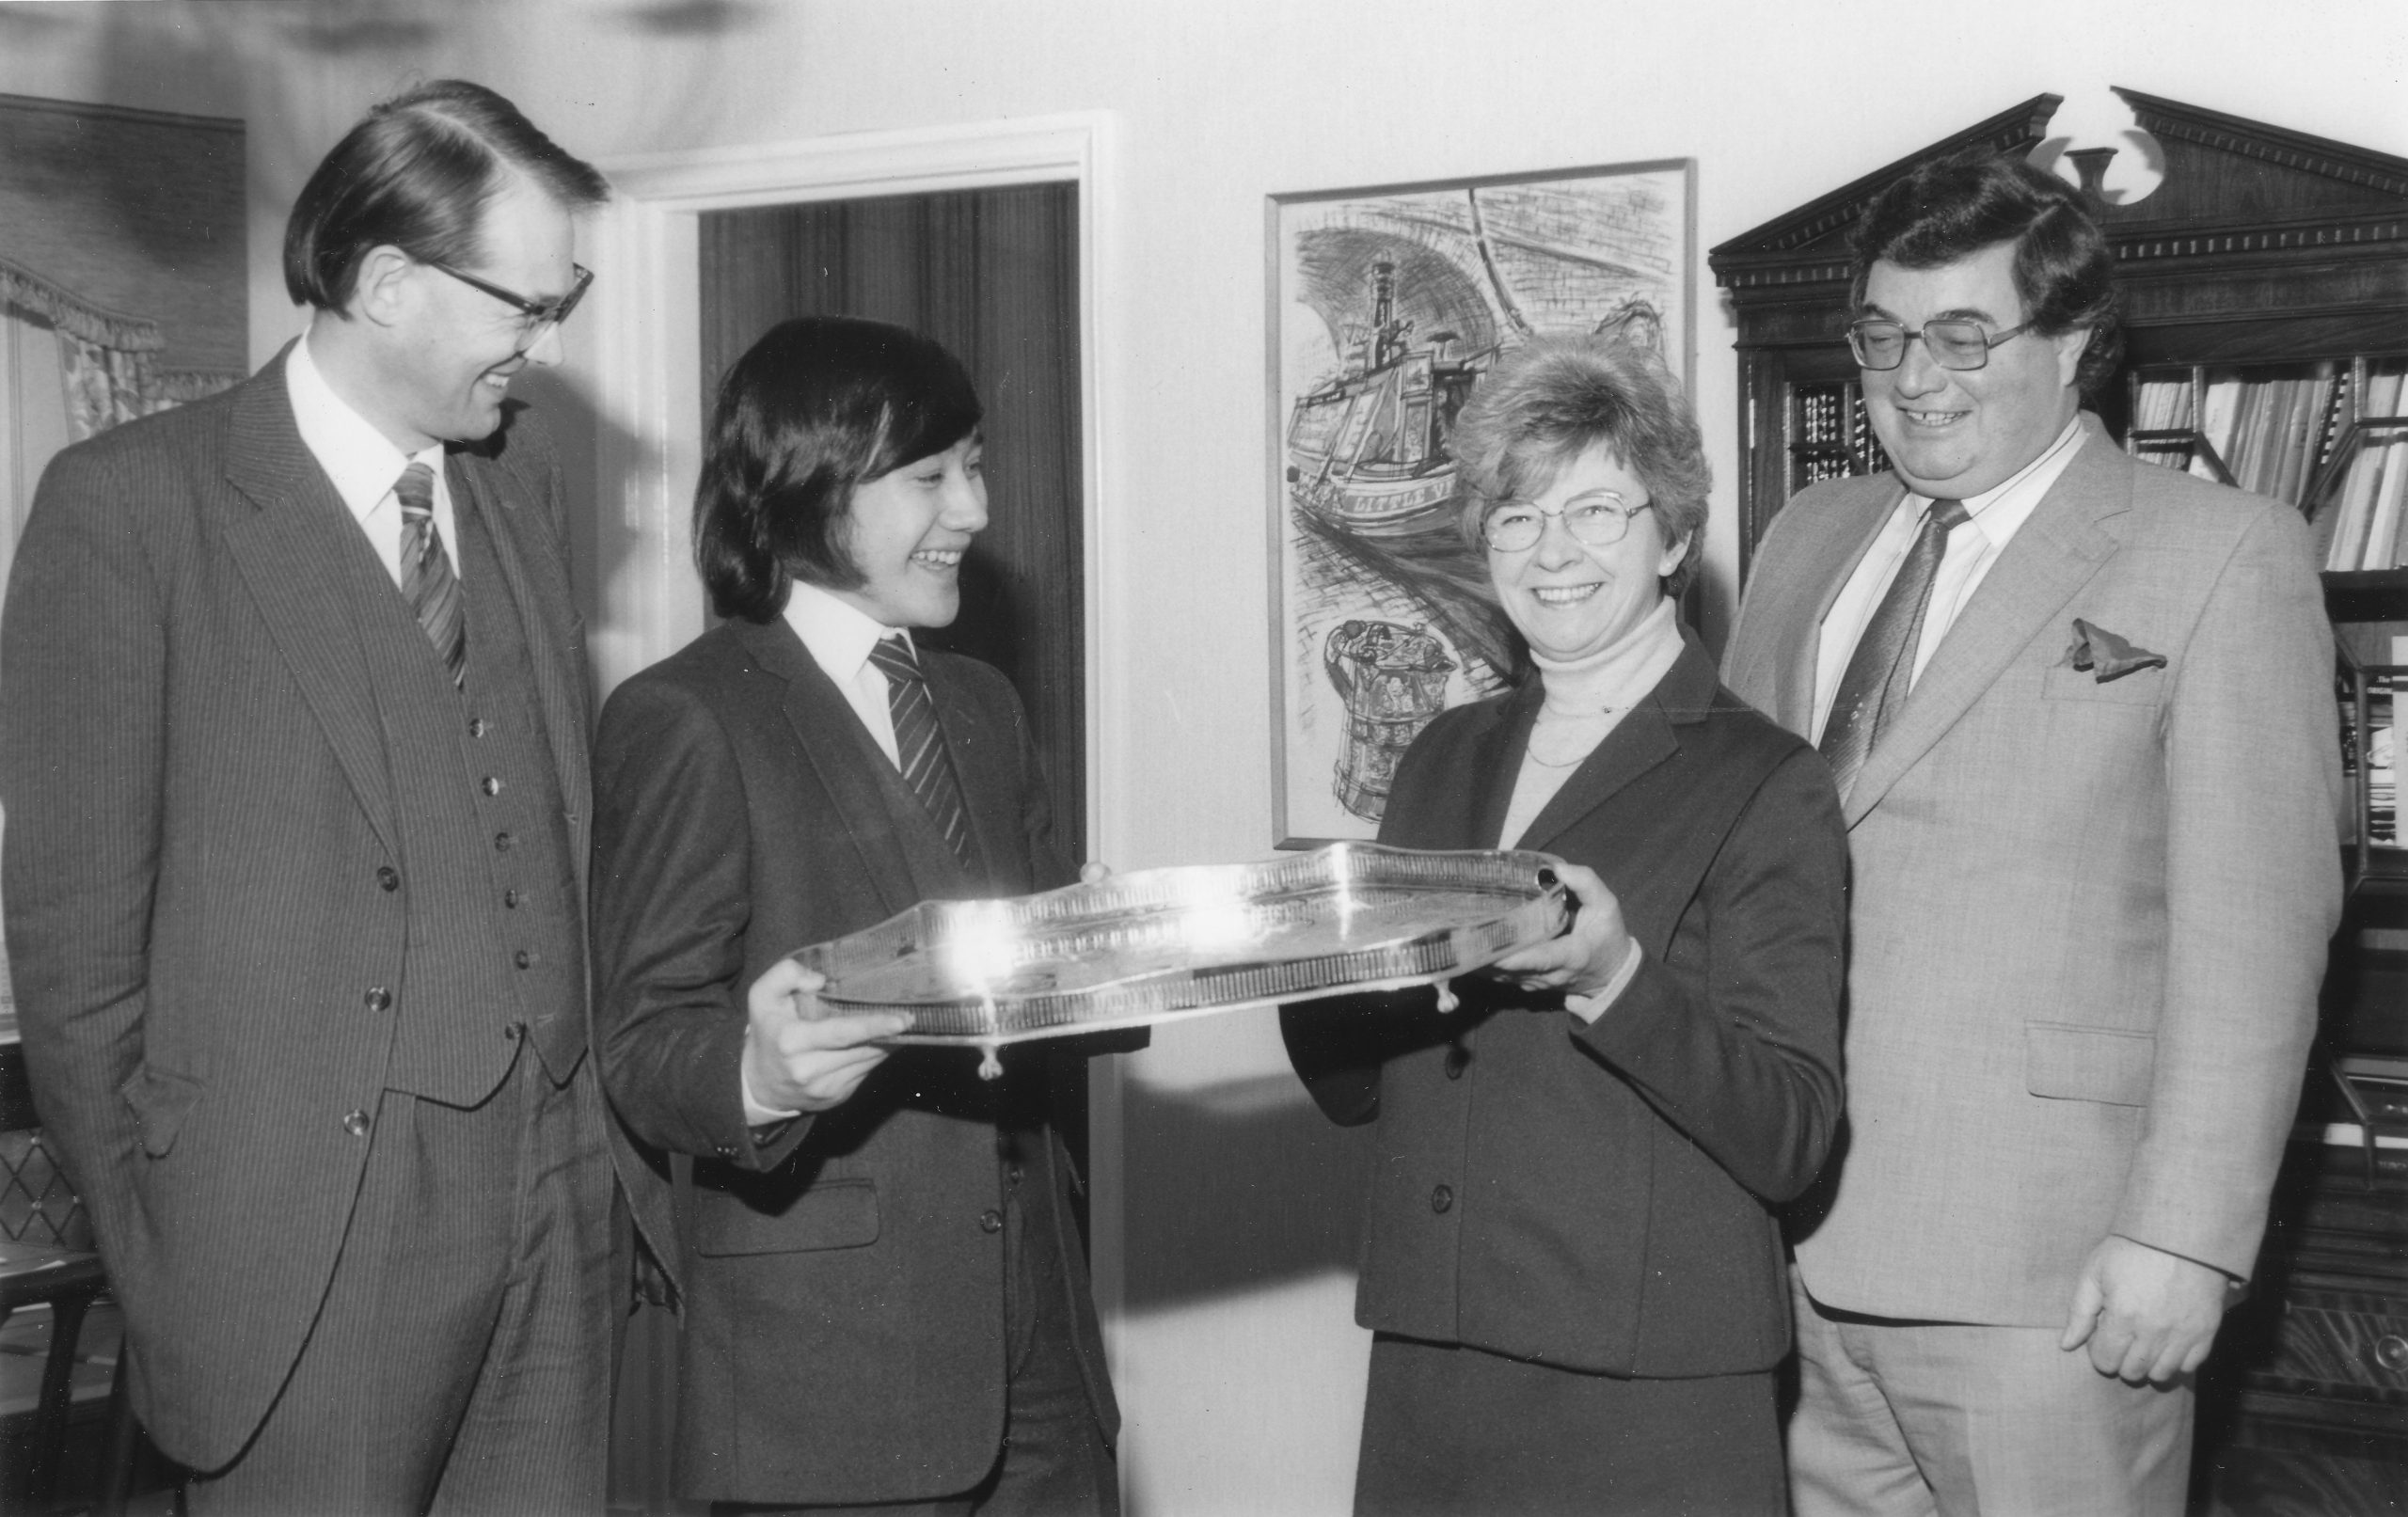 Mrs. Joan Agar; Chairman of Leigh Interests, presents the Leigh trophy (for 1981) to Mark Hebden. Left, David Anderton, BCF President; on the right Malcolm Wood, Leigh's Chief Executive. BCM, 1981, page 104